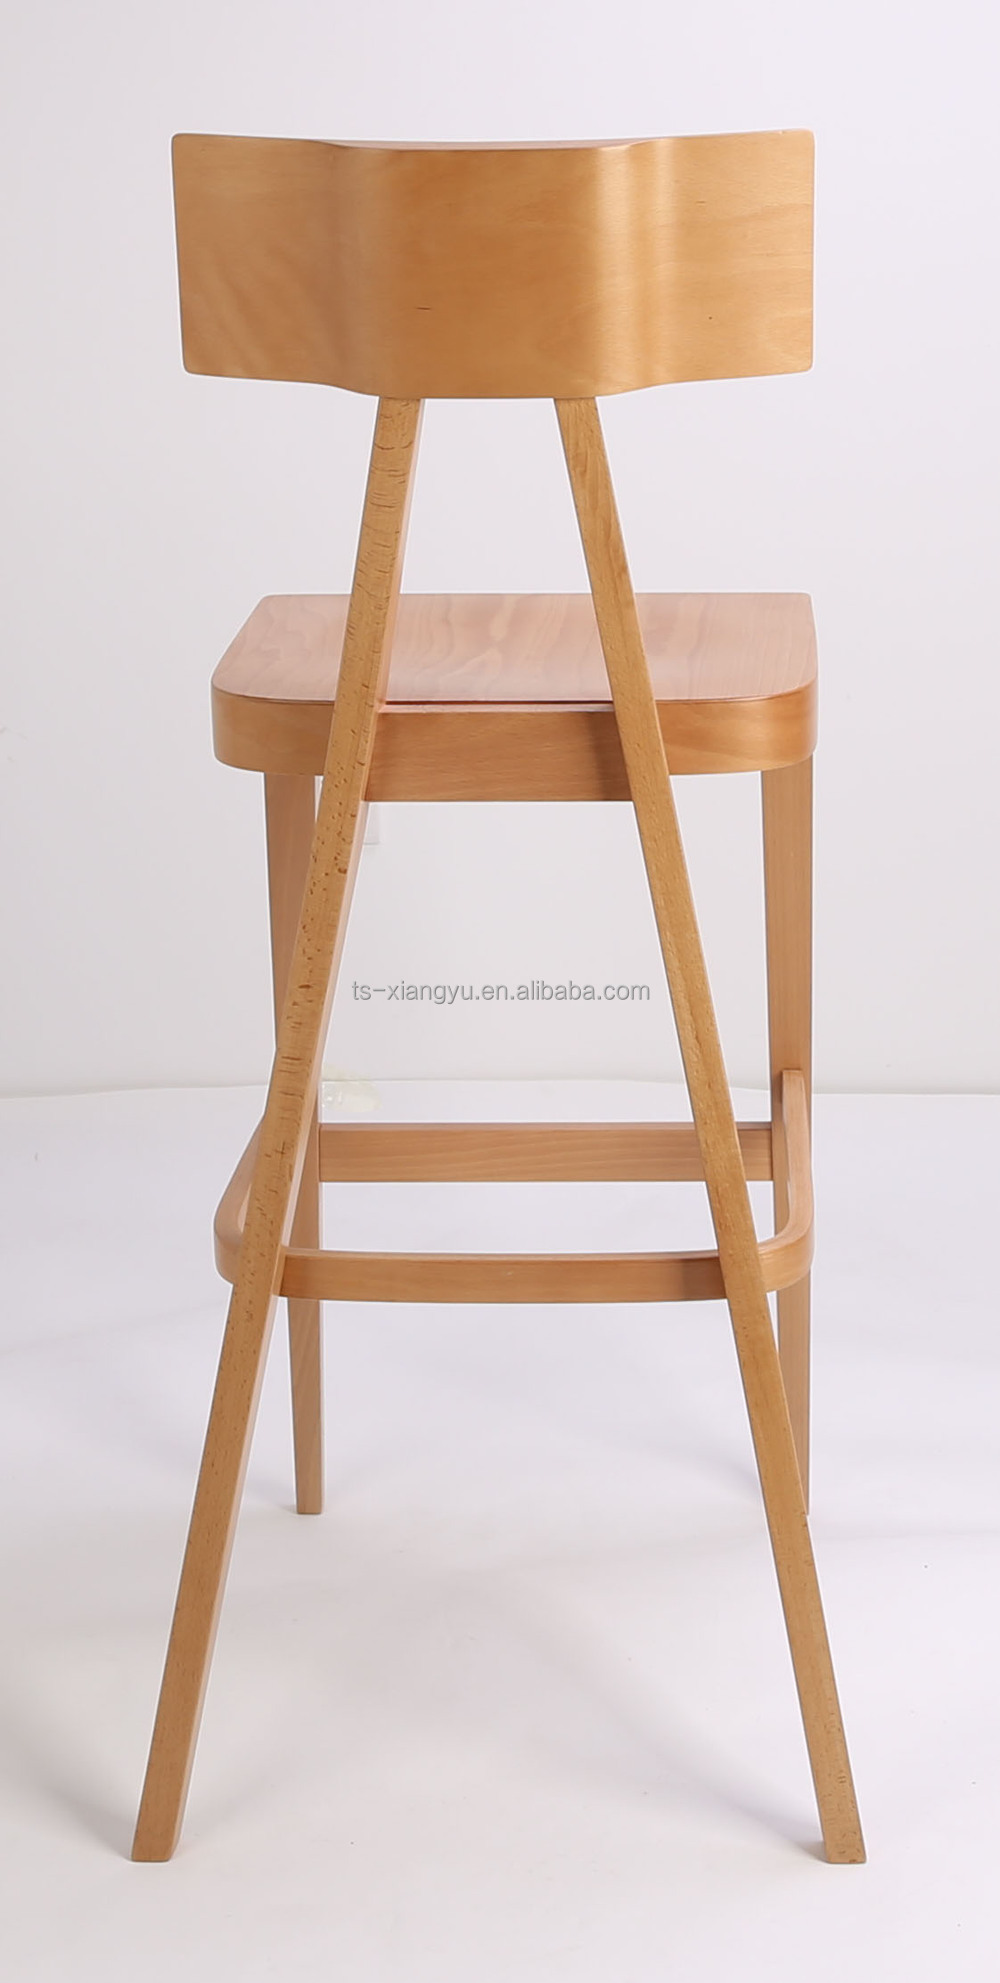 Dg w200b Used Adult Wooden High Chair Buy High Chair Product on